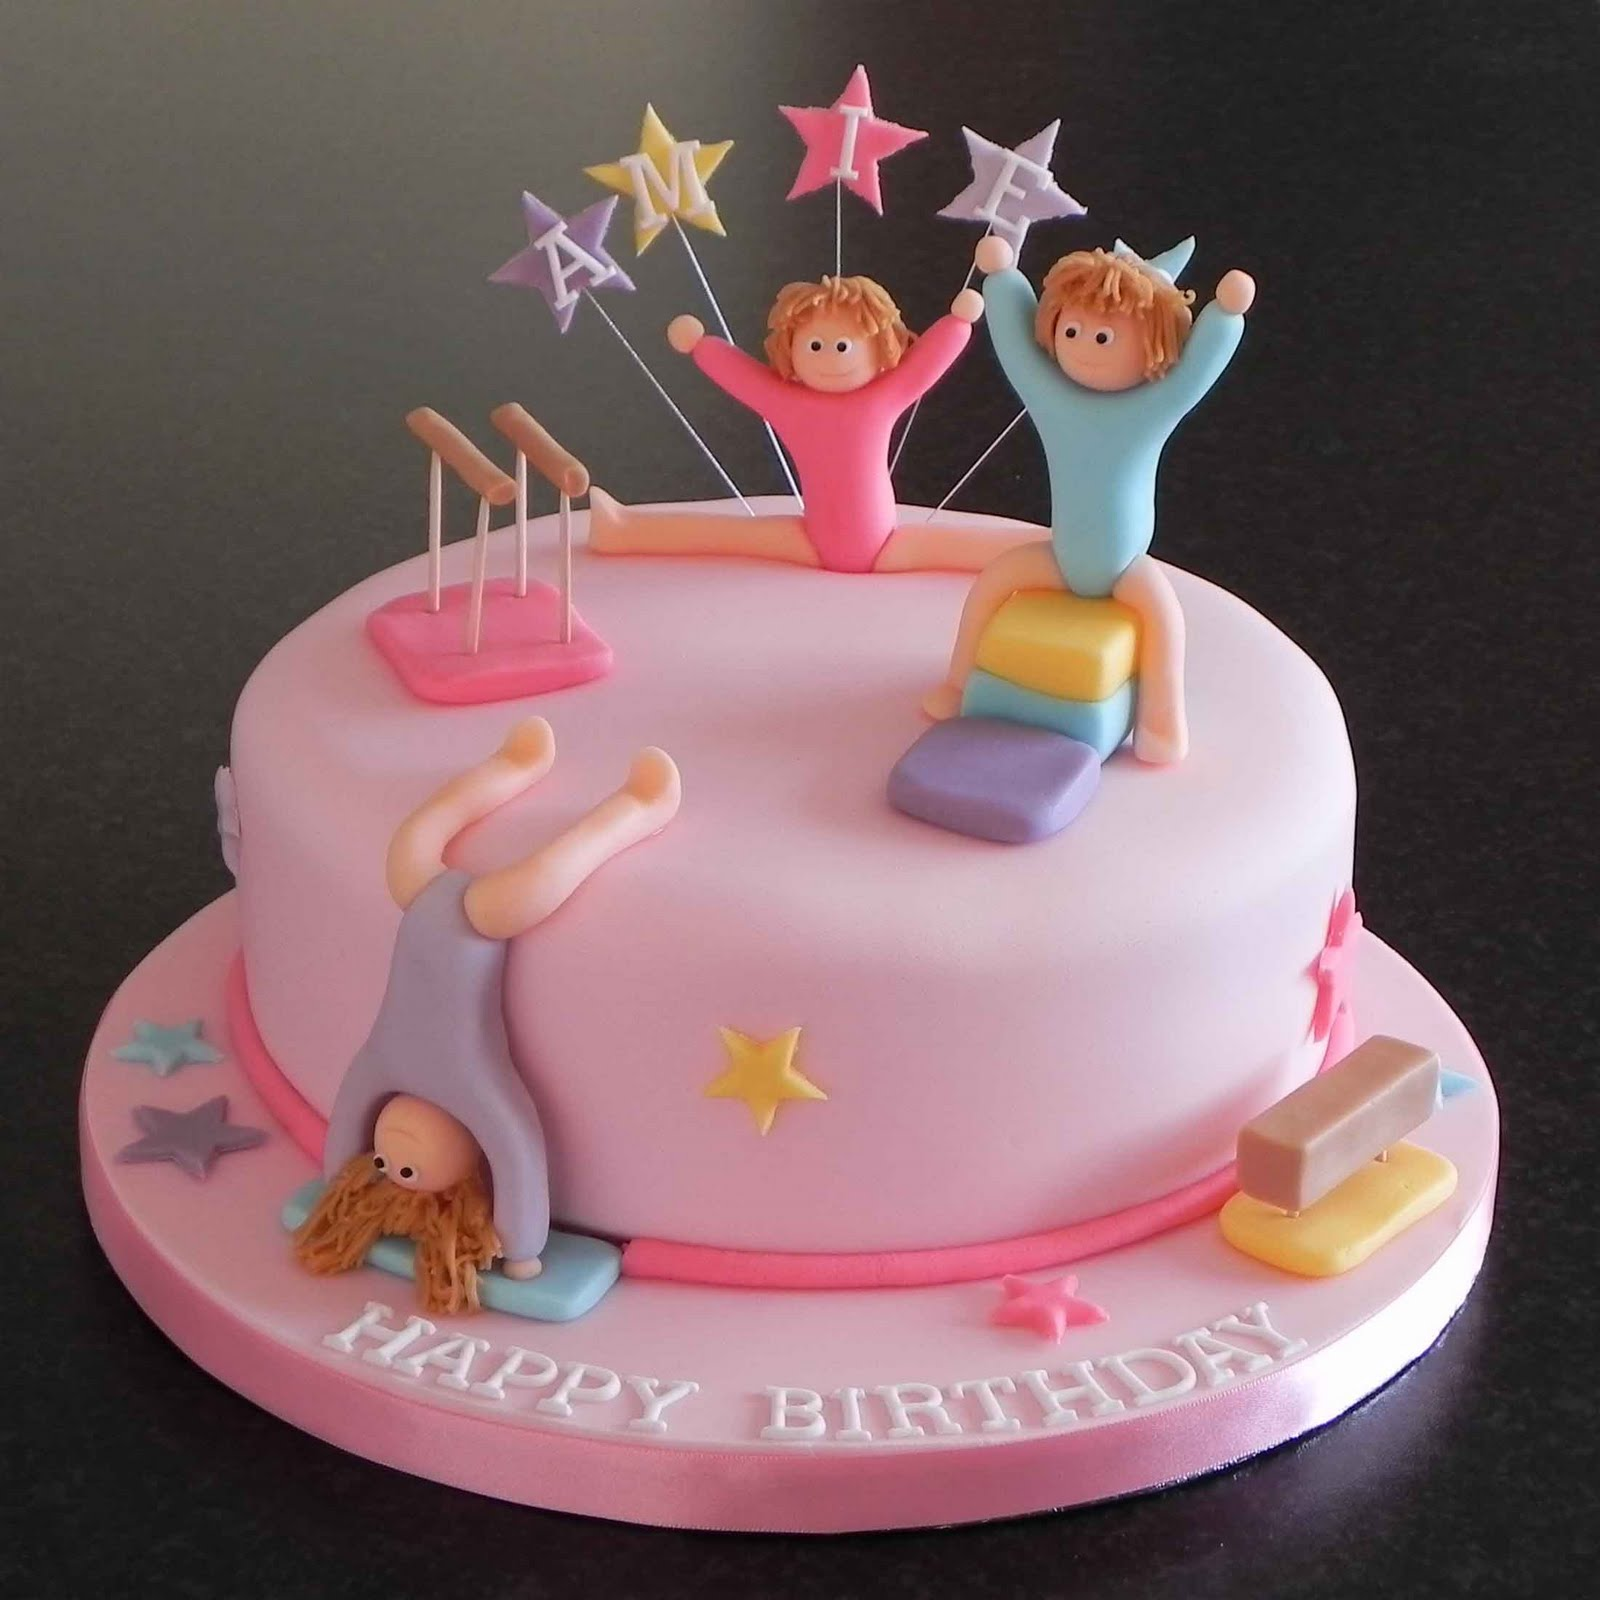 Cake Decorating Ideas Gymnastics : Cake by Lisa Price: Gymnastics Cake